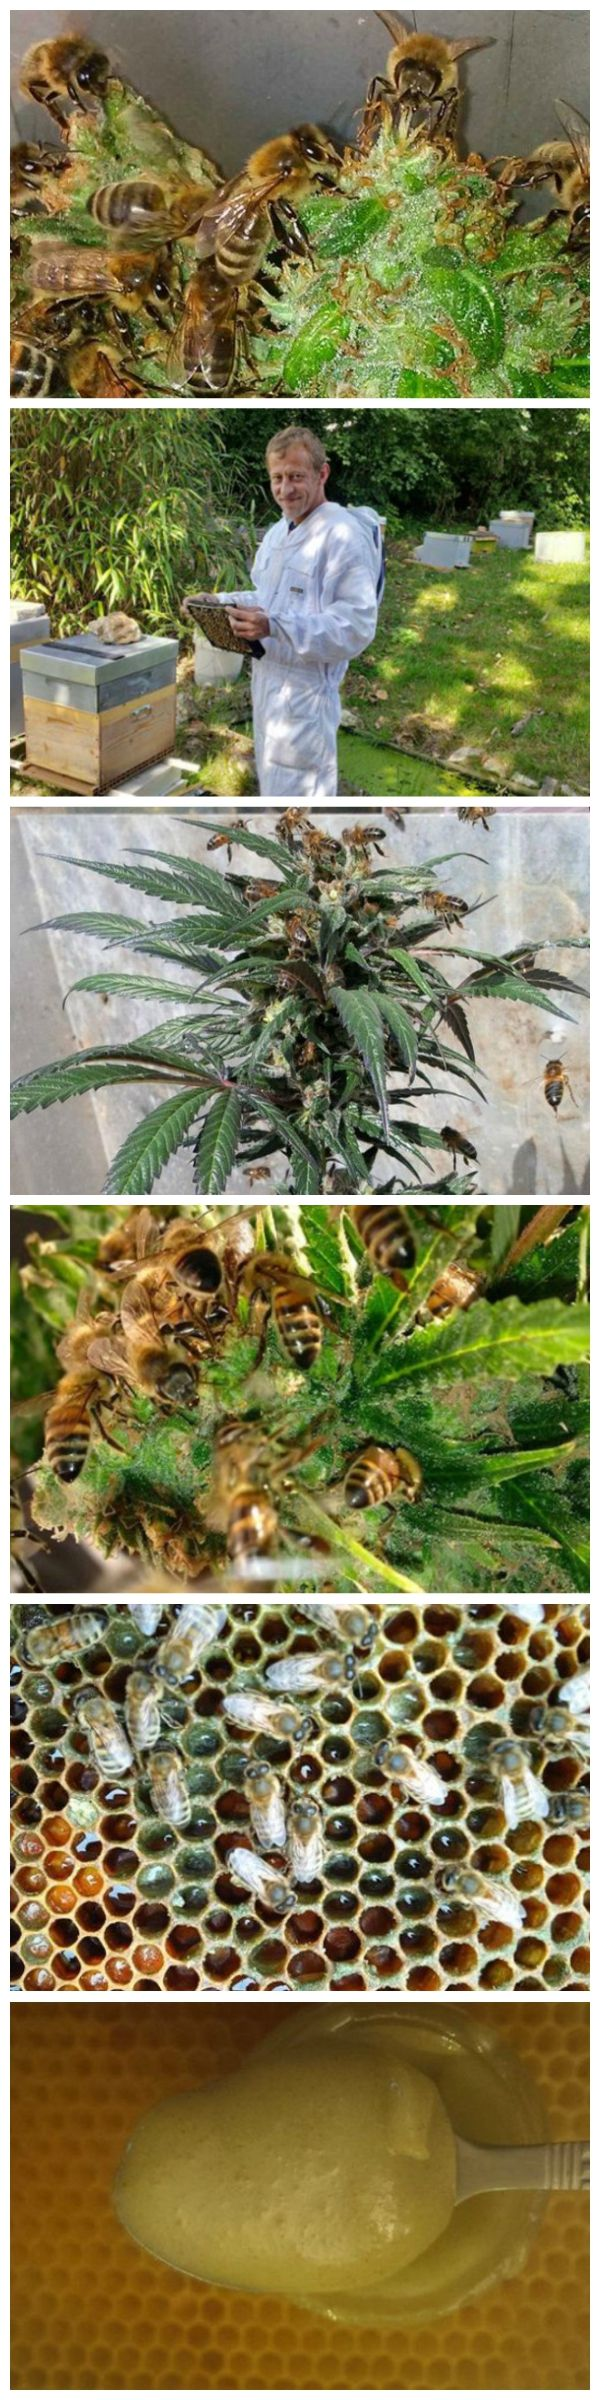 Bees that Make Honey with Cannabis Resin